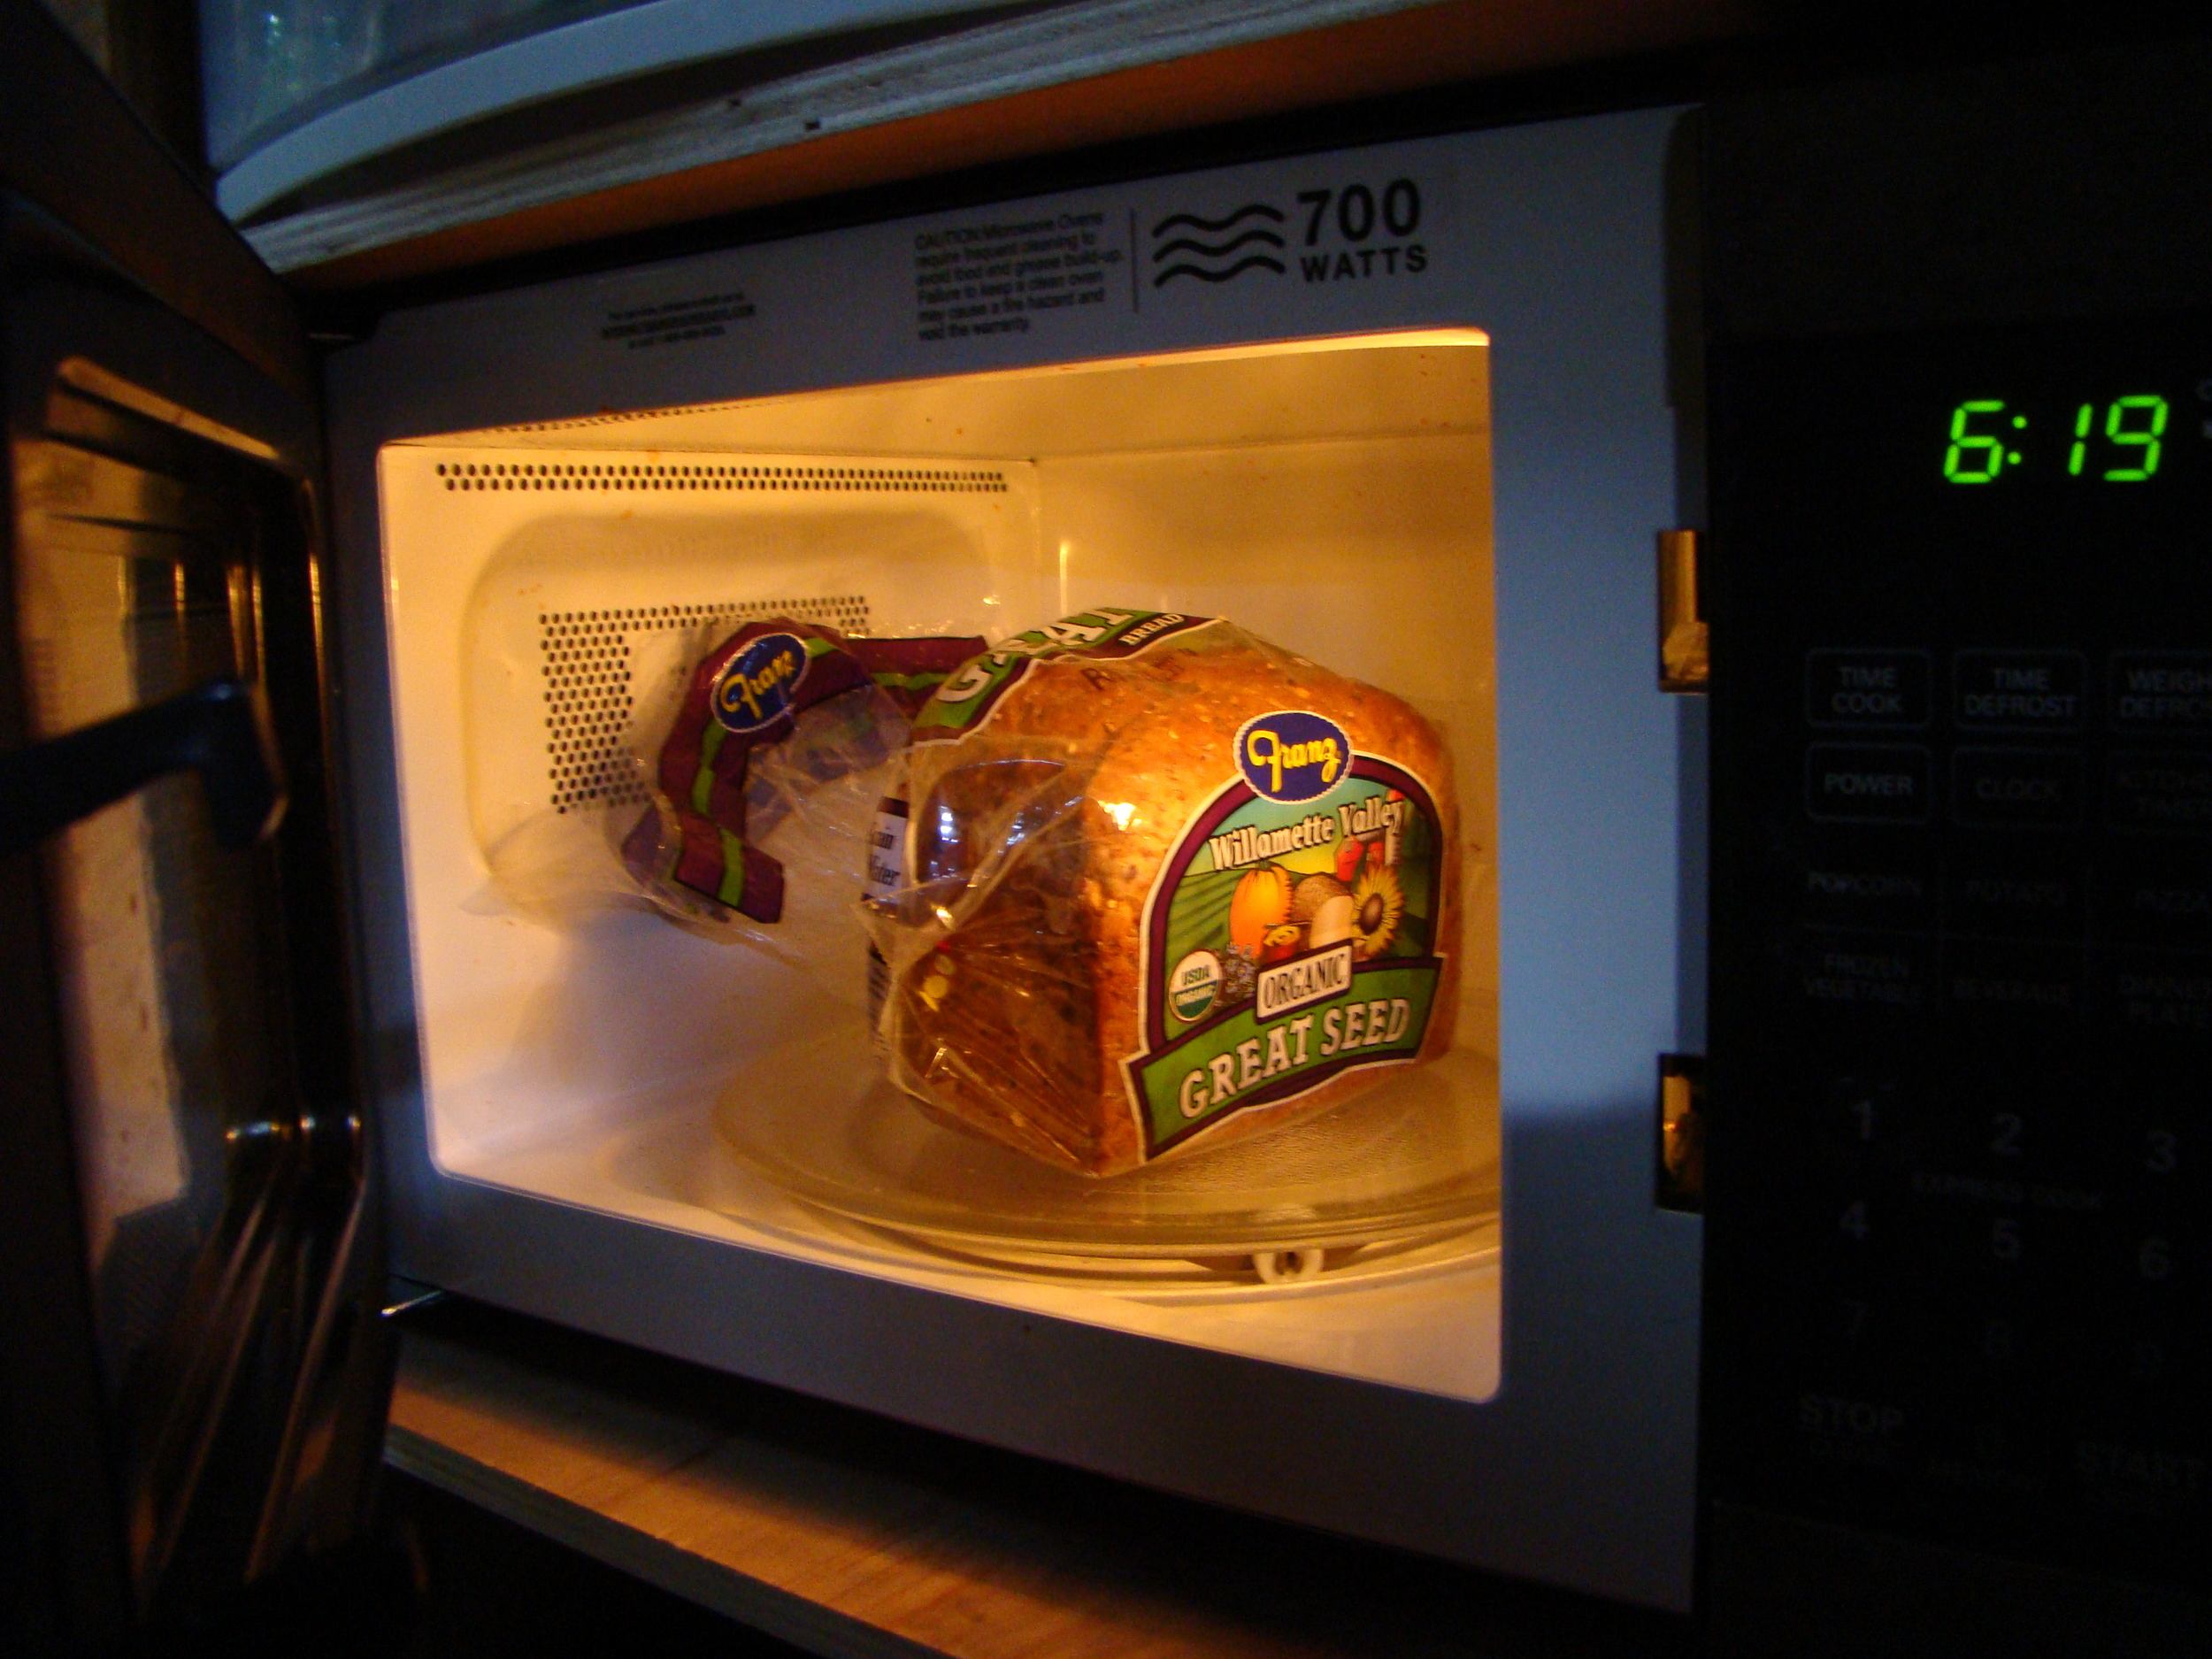 Microwave = Smaller Than a Bread Box